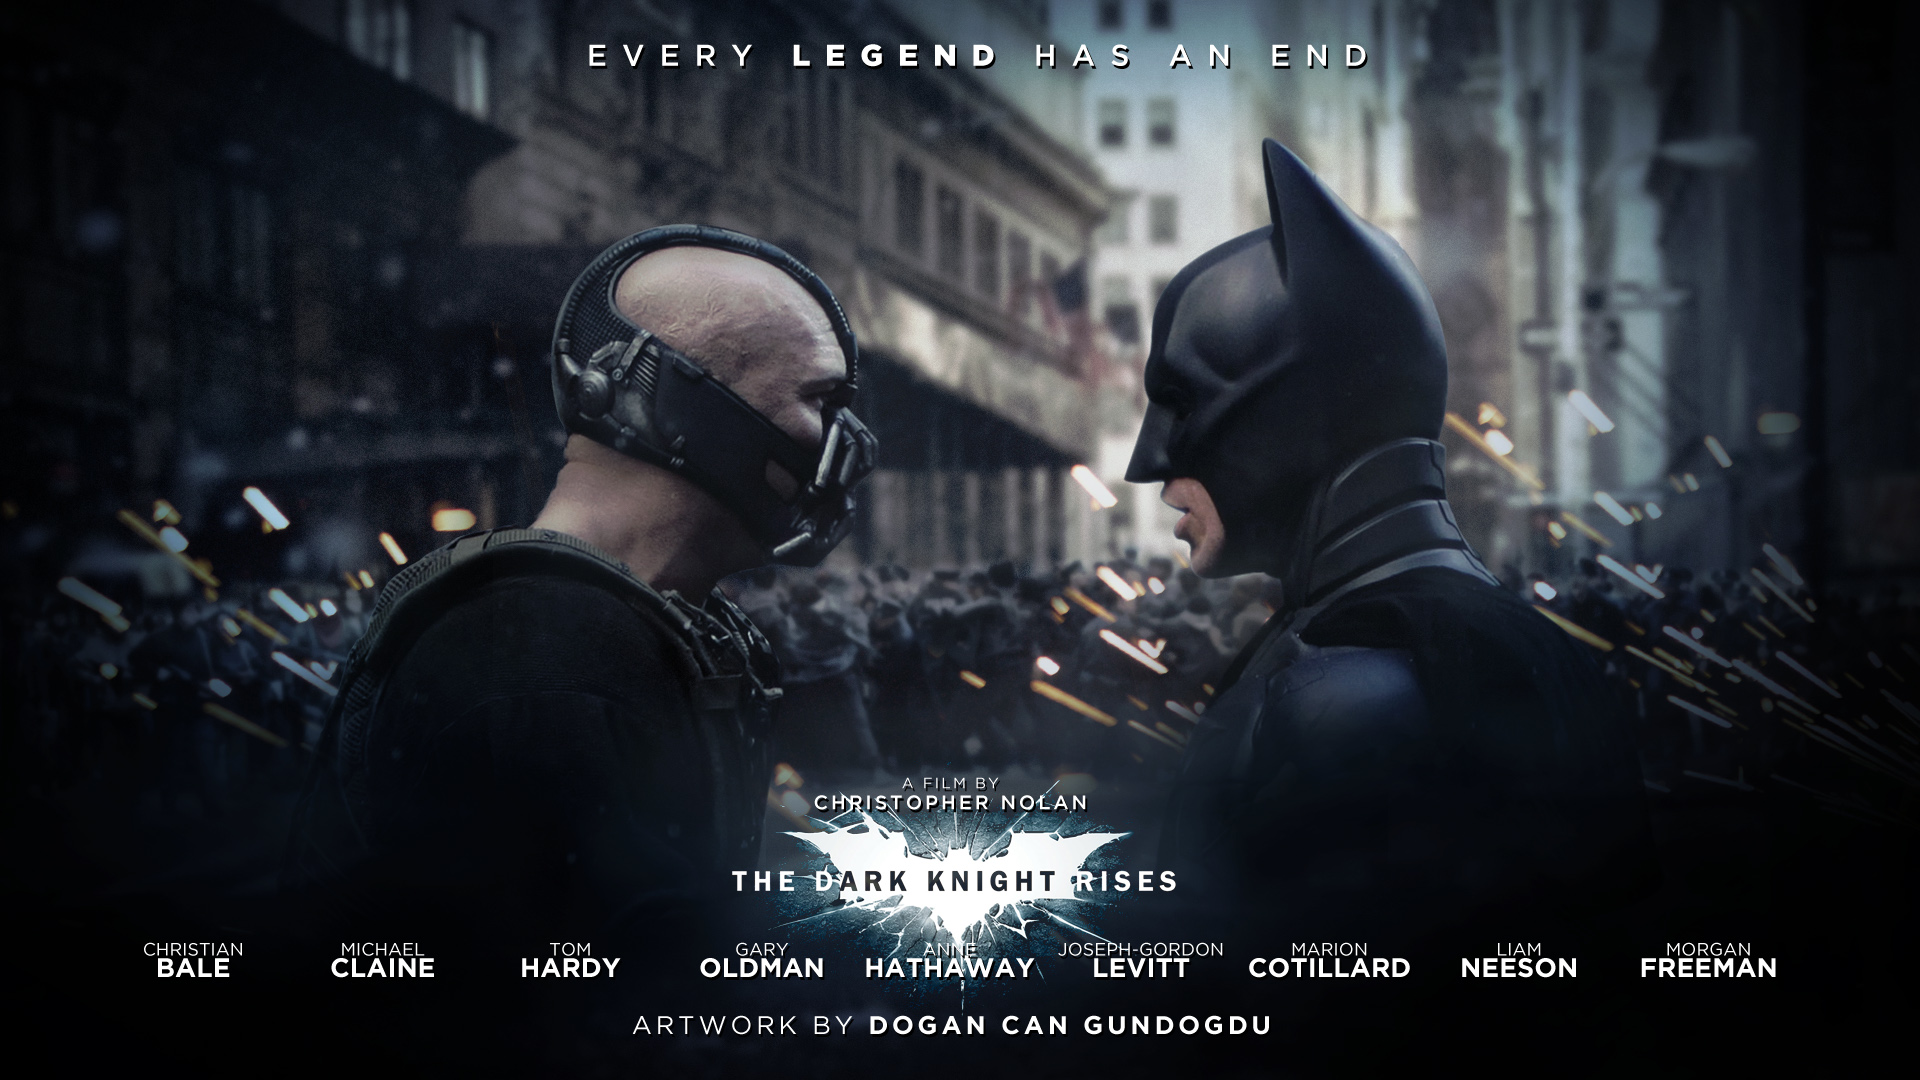 Bane And Batman In The Dark Knight Rises 4162553 1920x1080